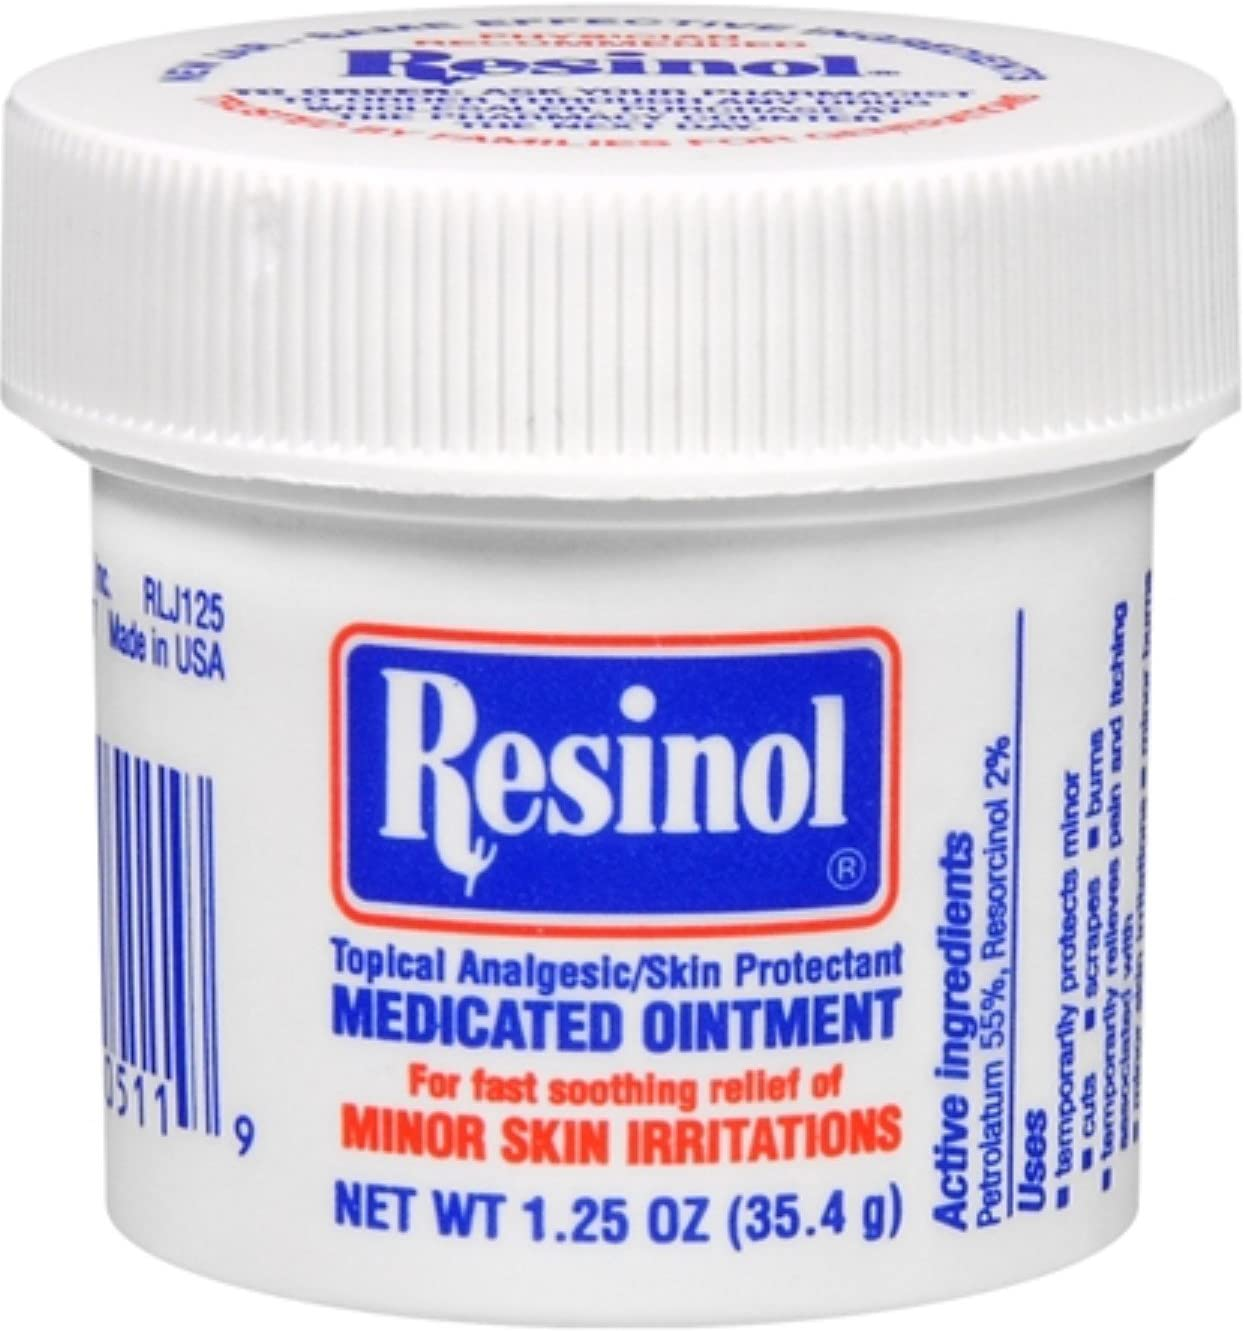 Free shipping Max 47% OFF Resinol Medicated Ointment 1.25 Pack of oz 12